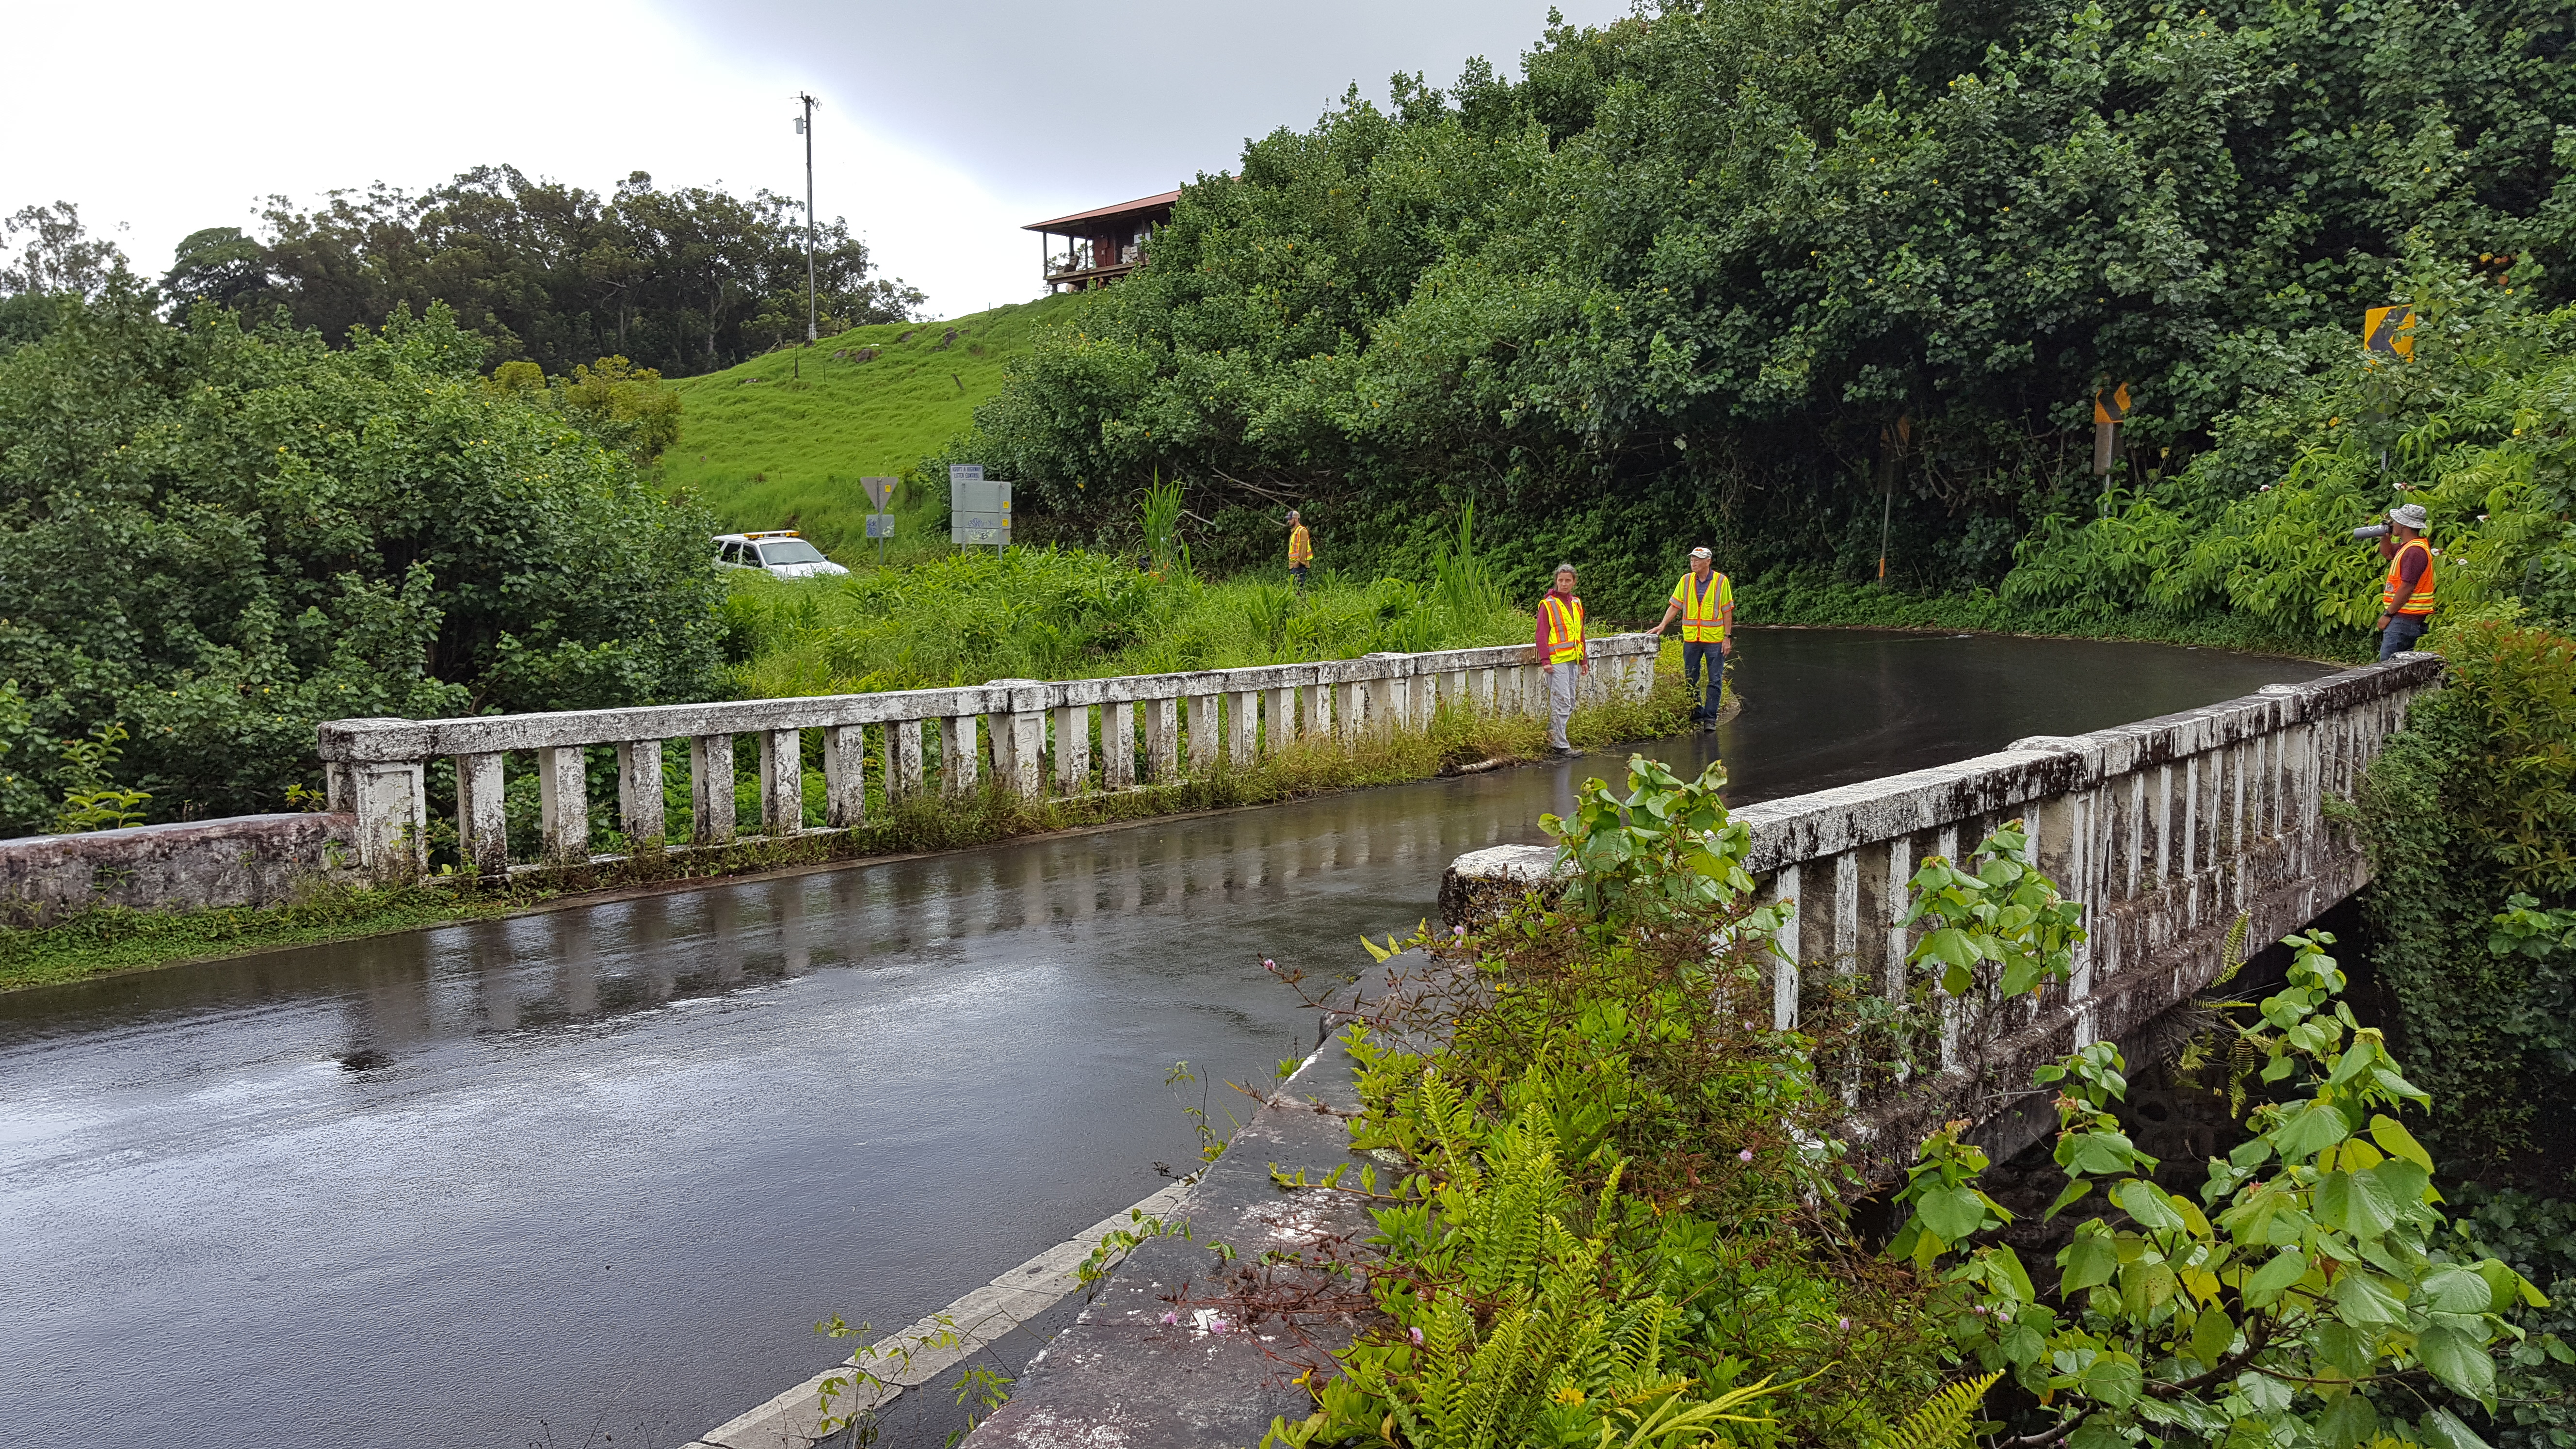 BRIDGE #2: KAILUA STREAM BRIDGE